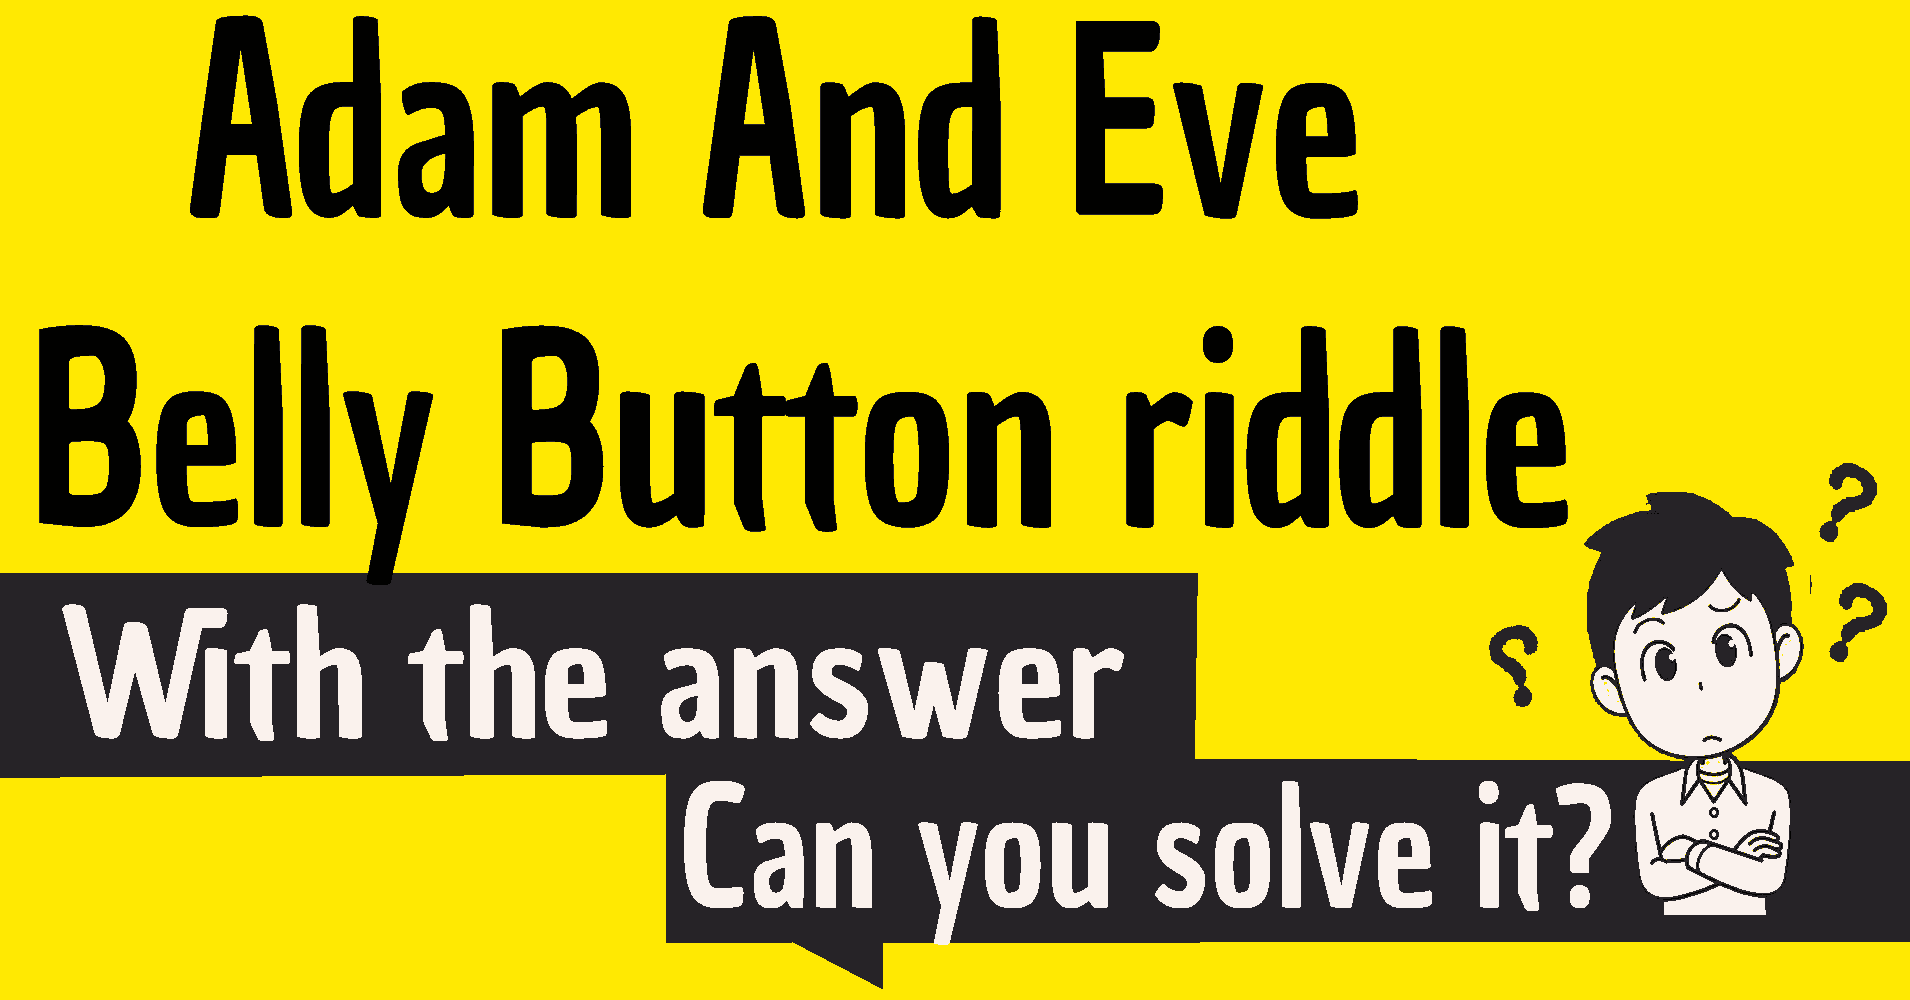 Adam And Eve Belly Button riddle Answer